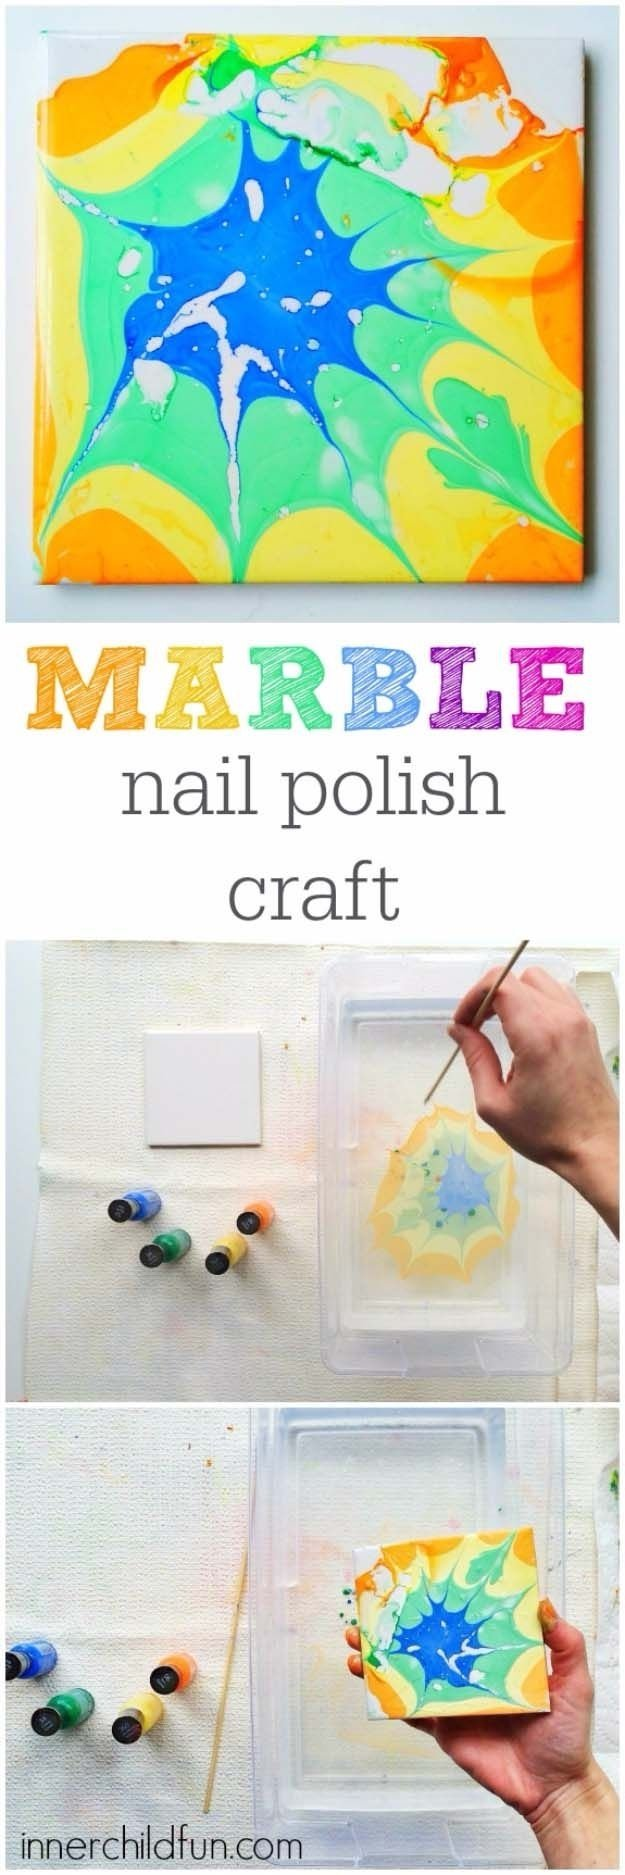 10 Attractive Cheap Arts And Crafts Ideas 47 best arts and crafts ideas images on pinterest crafts build 2021